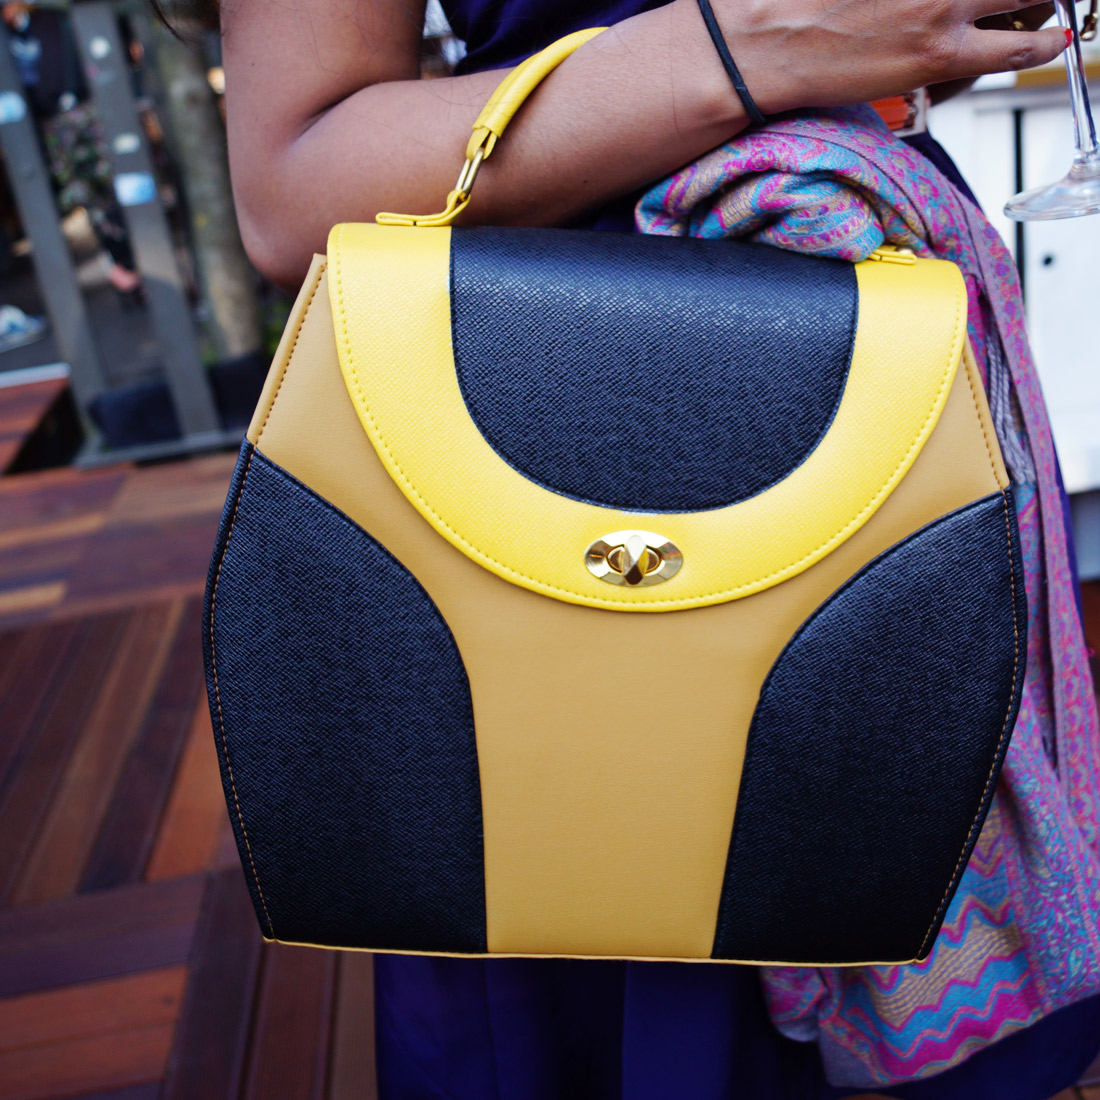 Bag-at-You---Fashion-blog---New-brand-to-be-launched-soon-at-MBFWA